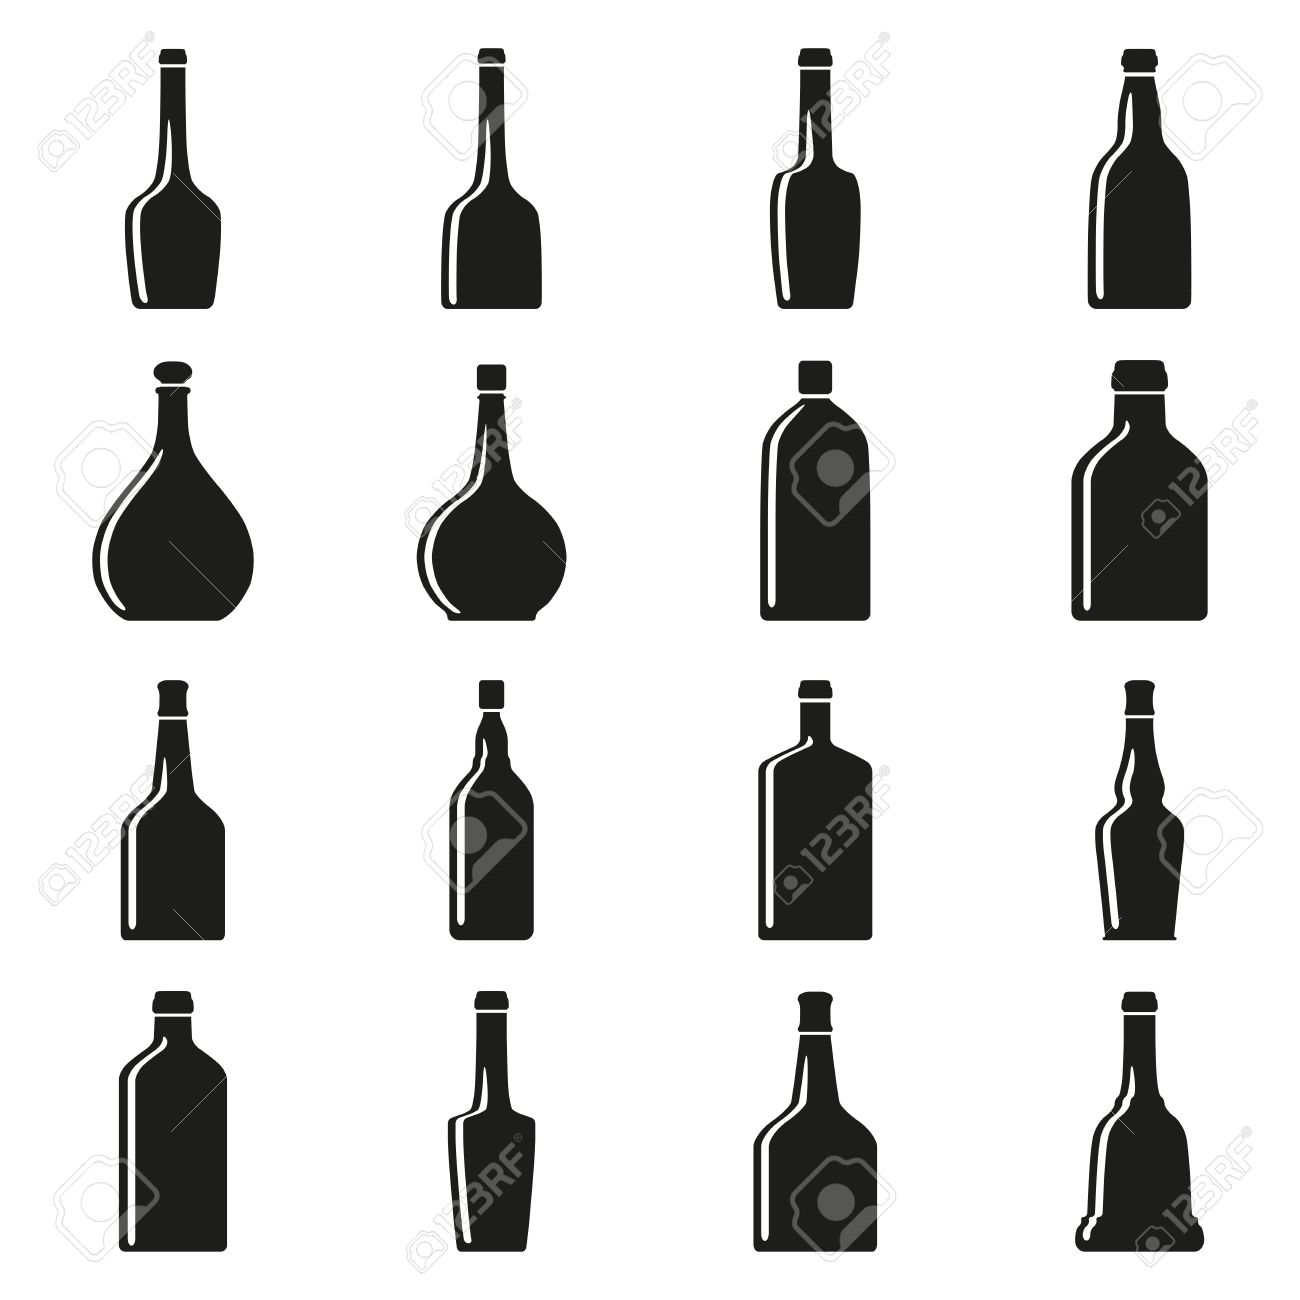 Set Of Bottles Silhouettes Royalty Free Cliparts, Vectors, And.